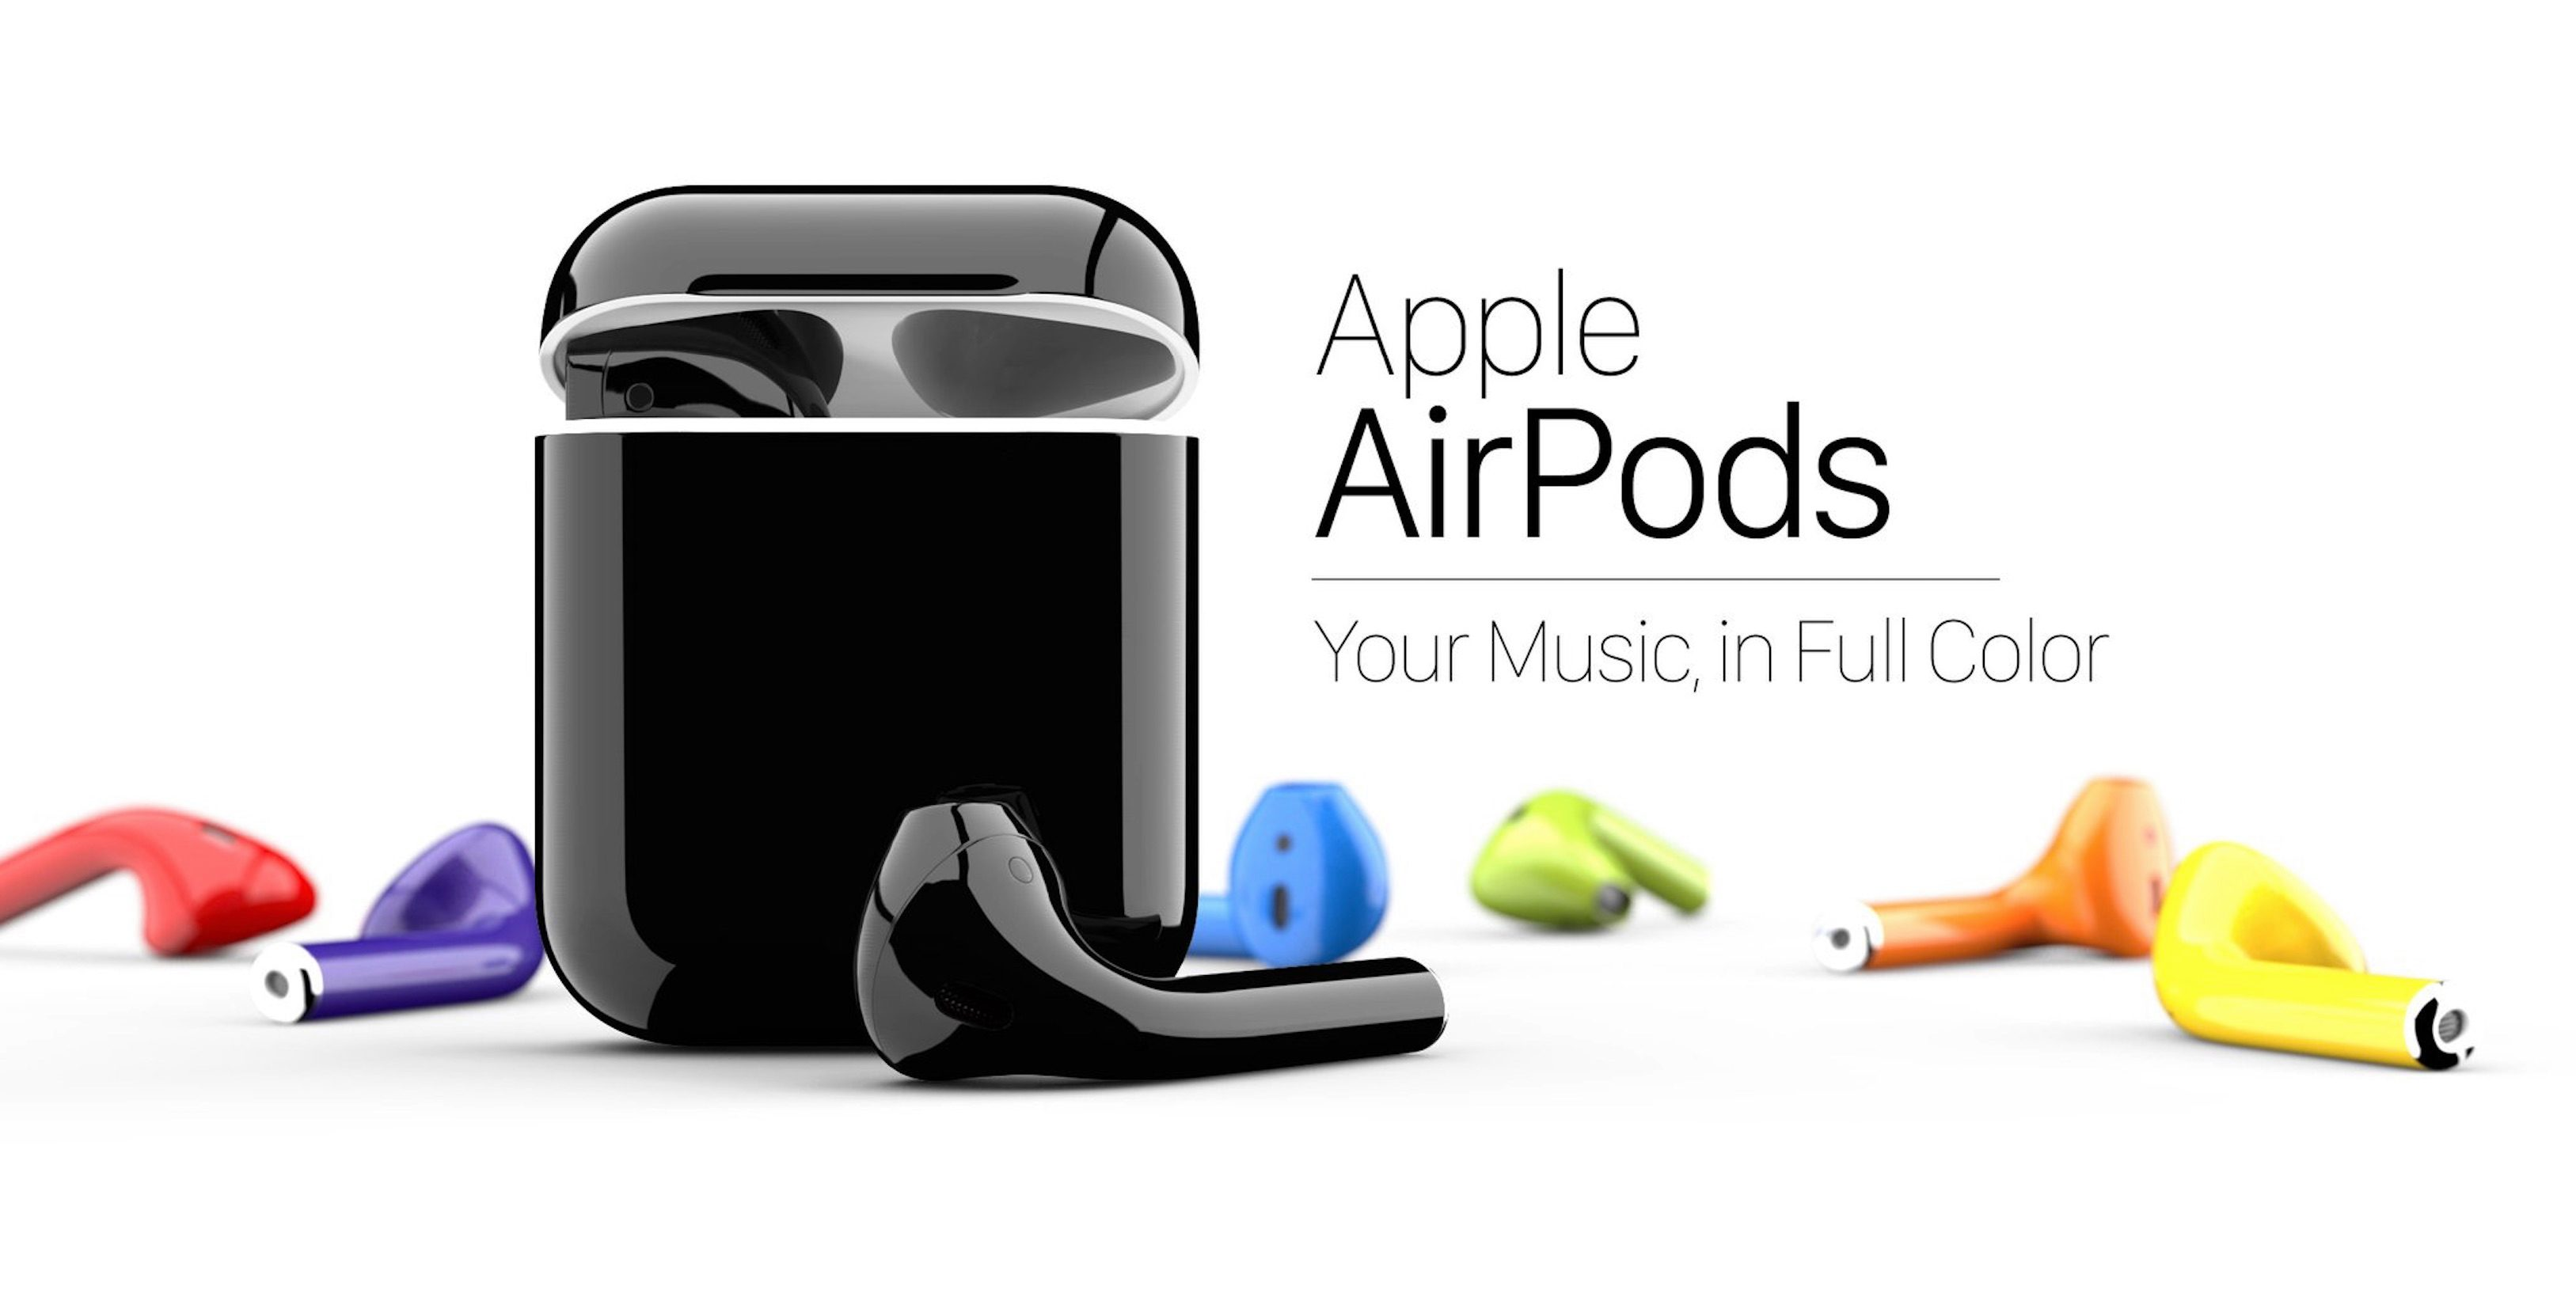 "<span href=""https://9to5mac.com/2017/02/22/customize-airpods-with-different-colors-jet-black/"">ColorWare introduce la posibilidad de personalizar AirPods 58 en diferentes colores, incluyendo Negro azabache</a>"